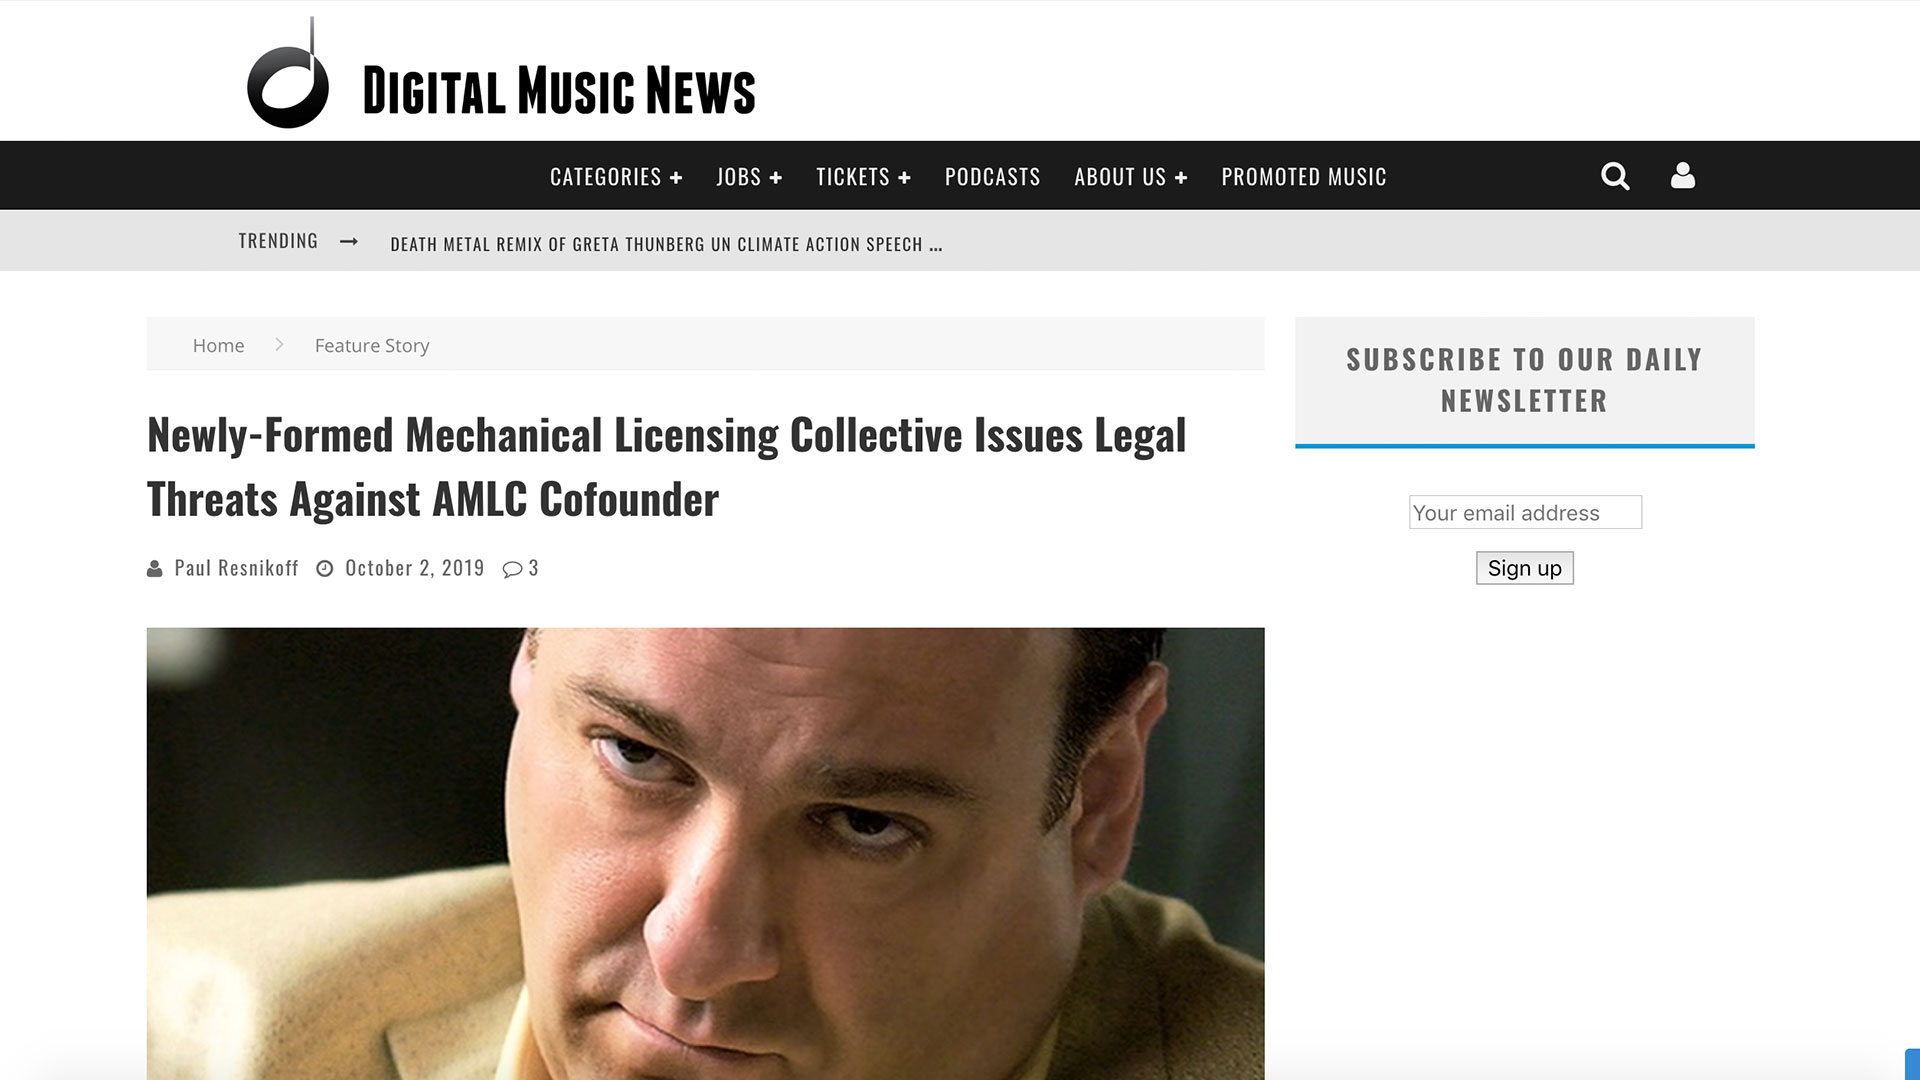 Fairness Rocks News Newly-Formed Mechanical Licensing Collective Issues Legal Threats Against AMLC Cofounder